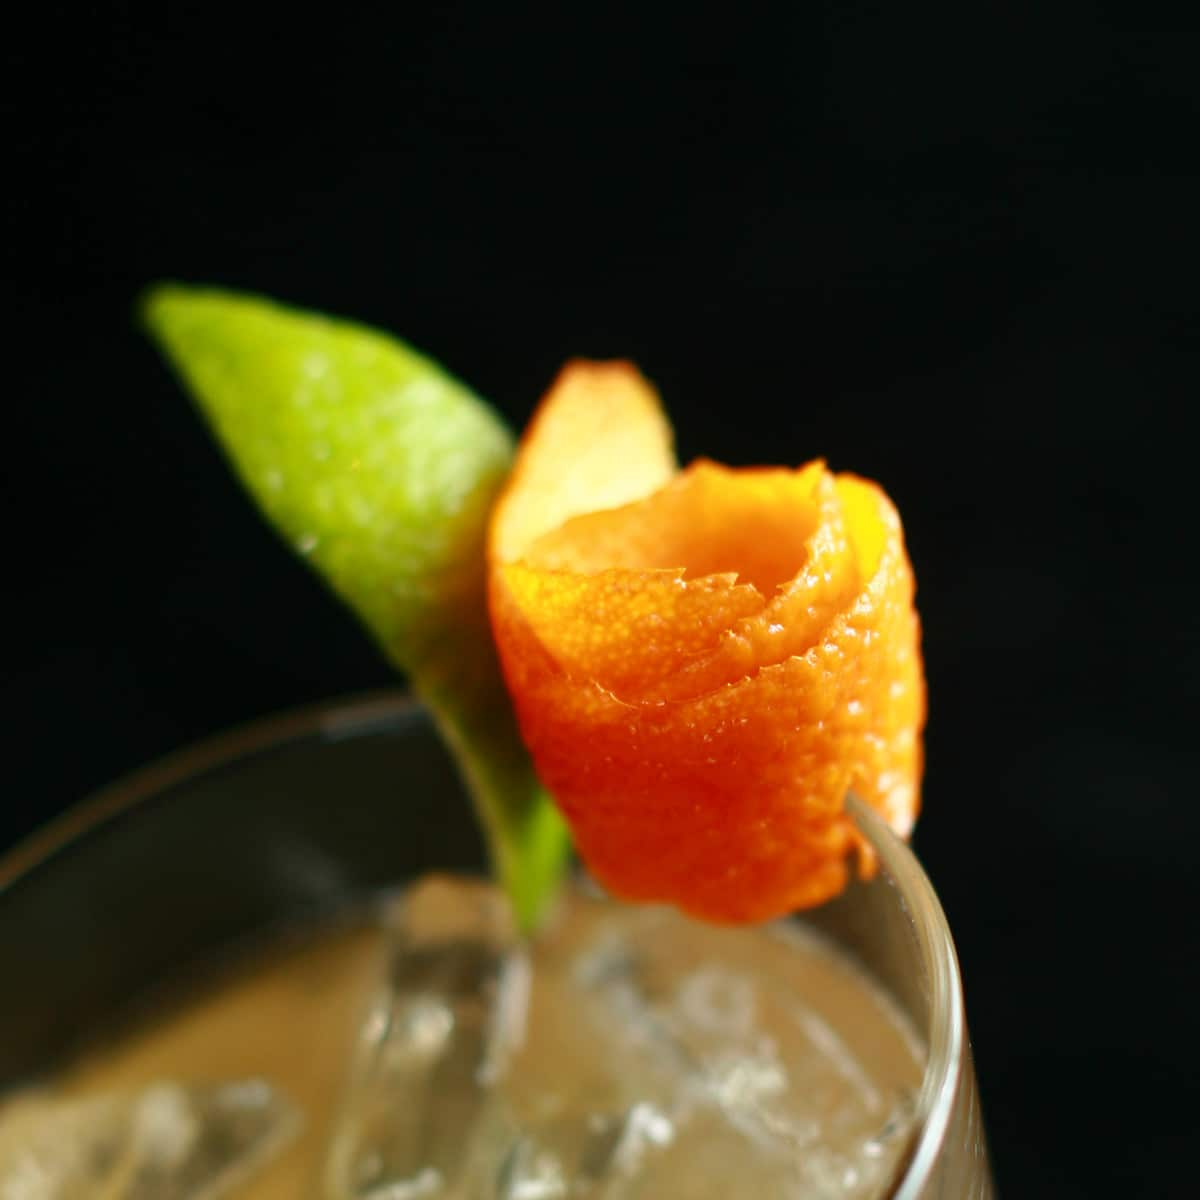 A close up photo of a citrus peel rose garnish on the edge of a cocktail glass.